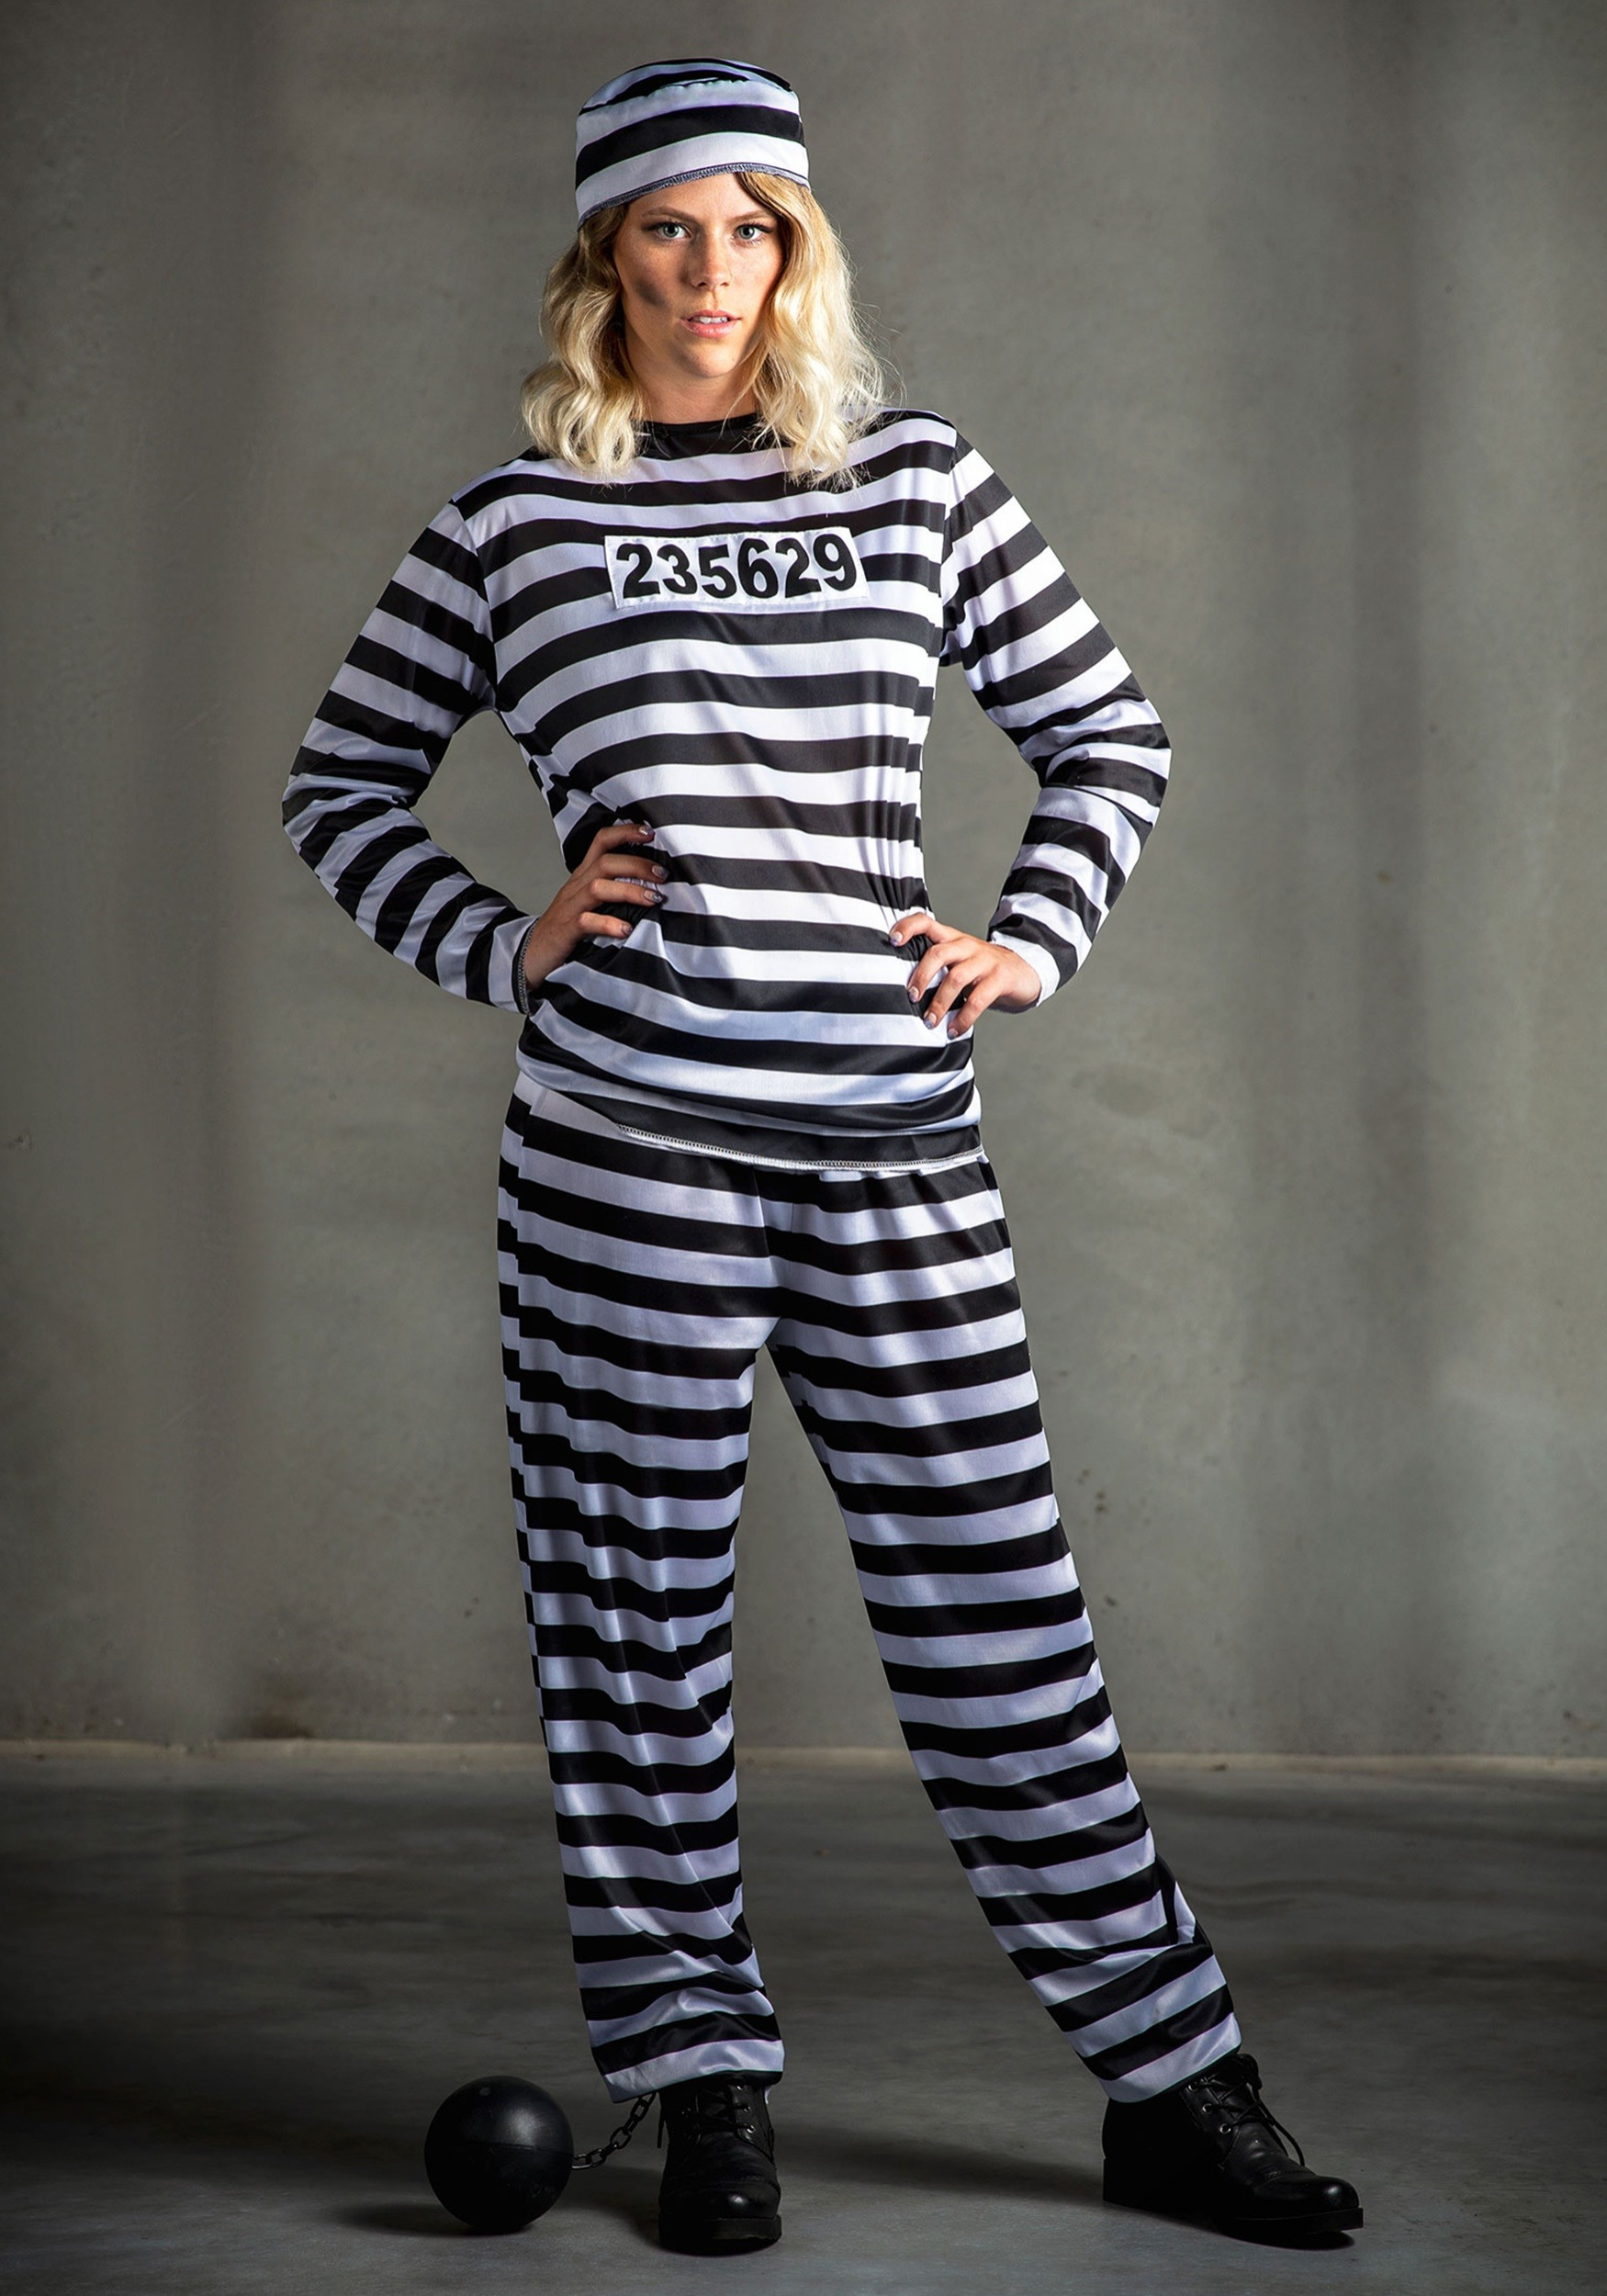 Plus Size Womens Prisoner Costume  sc 1 st  Halloween Costumes & Plus Size Womenu0027s Prisoner Costume 1X 2X 3X 4X 5X 6X 7X 8X